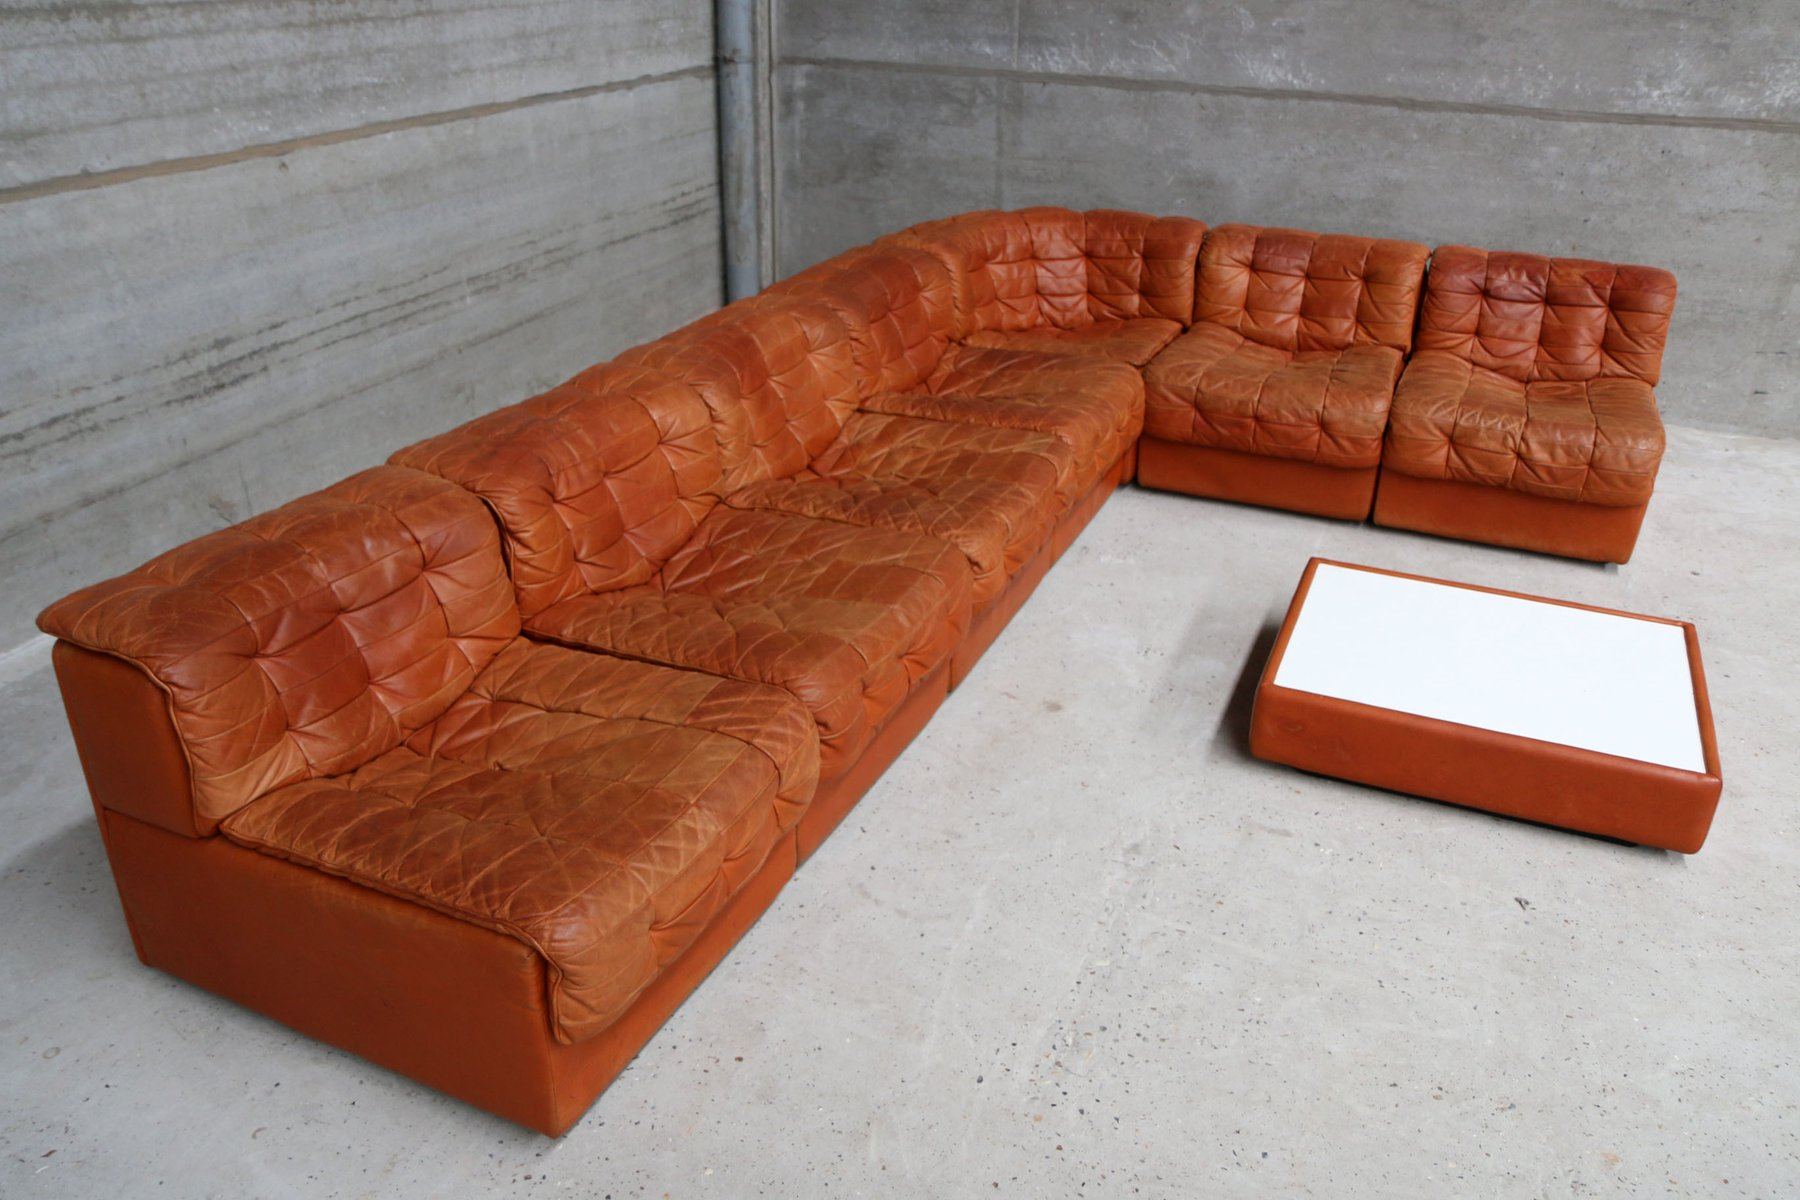 Vintage Ds 11 Leather Sofas Coffee Table From De Sede